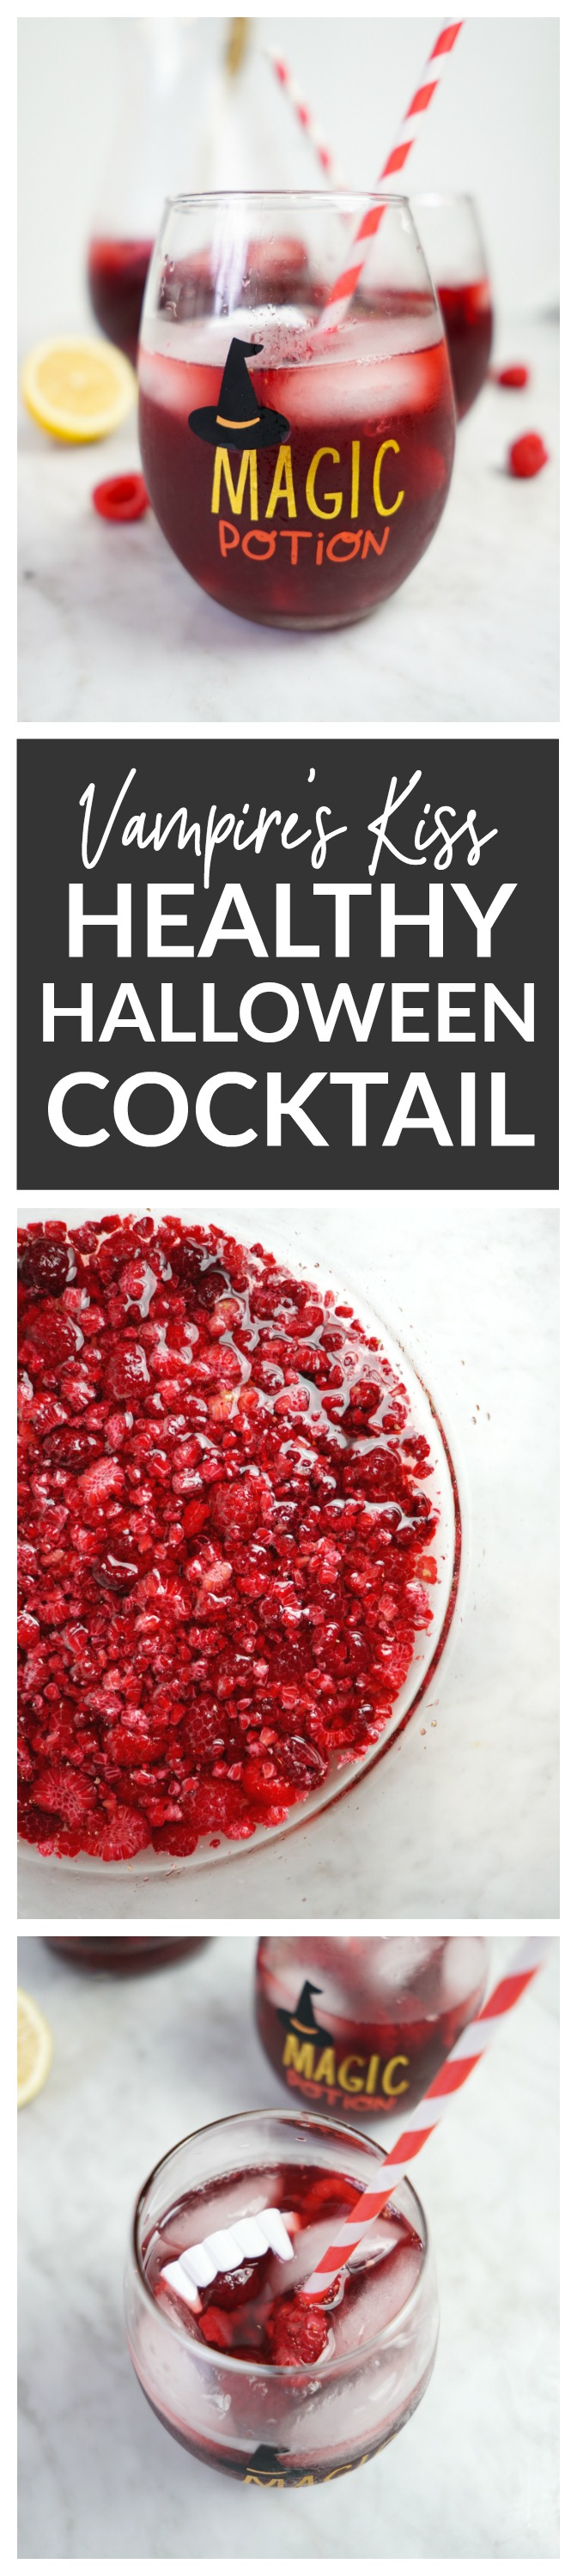 Vampire's Kiss Healthy Halloween Cocktail Recipe - made with frozen raspberries and fresh pomegranate juice